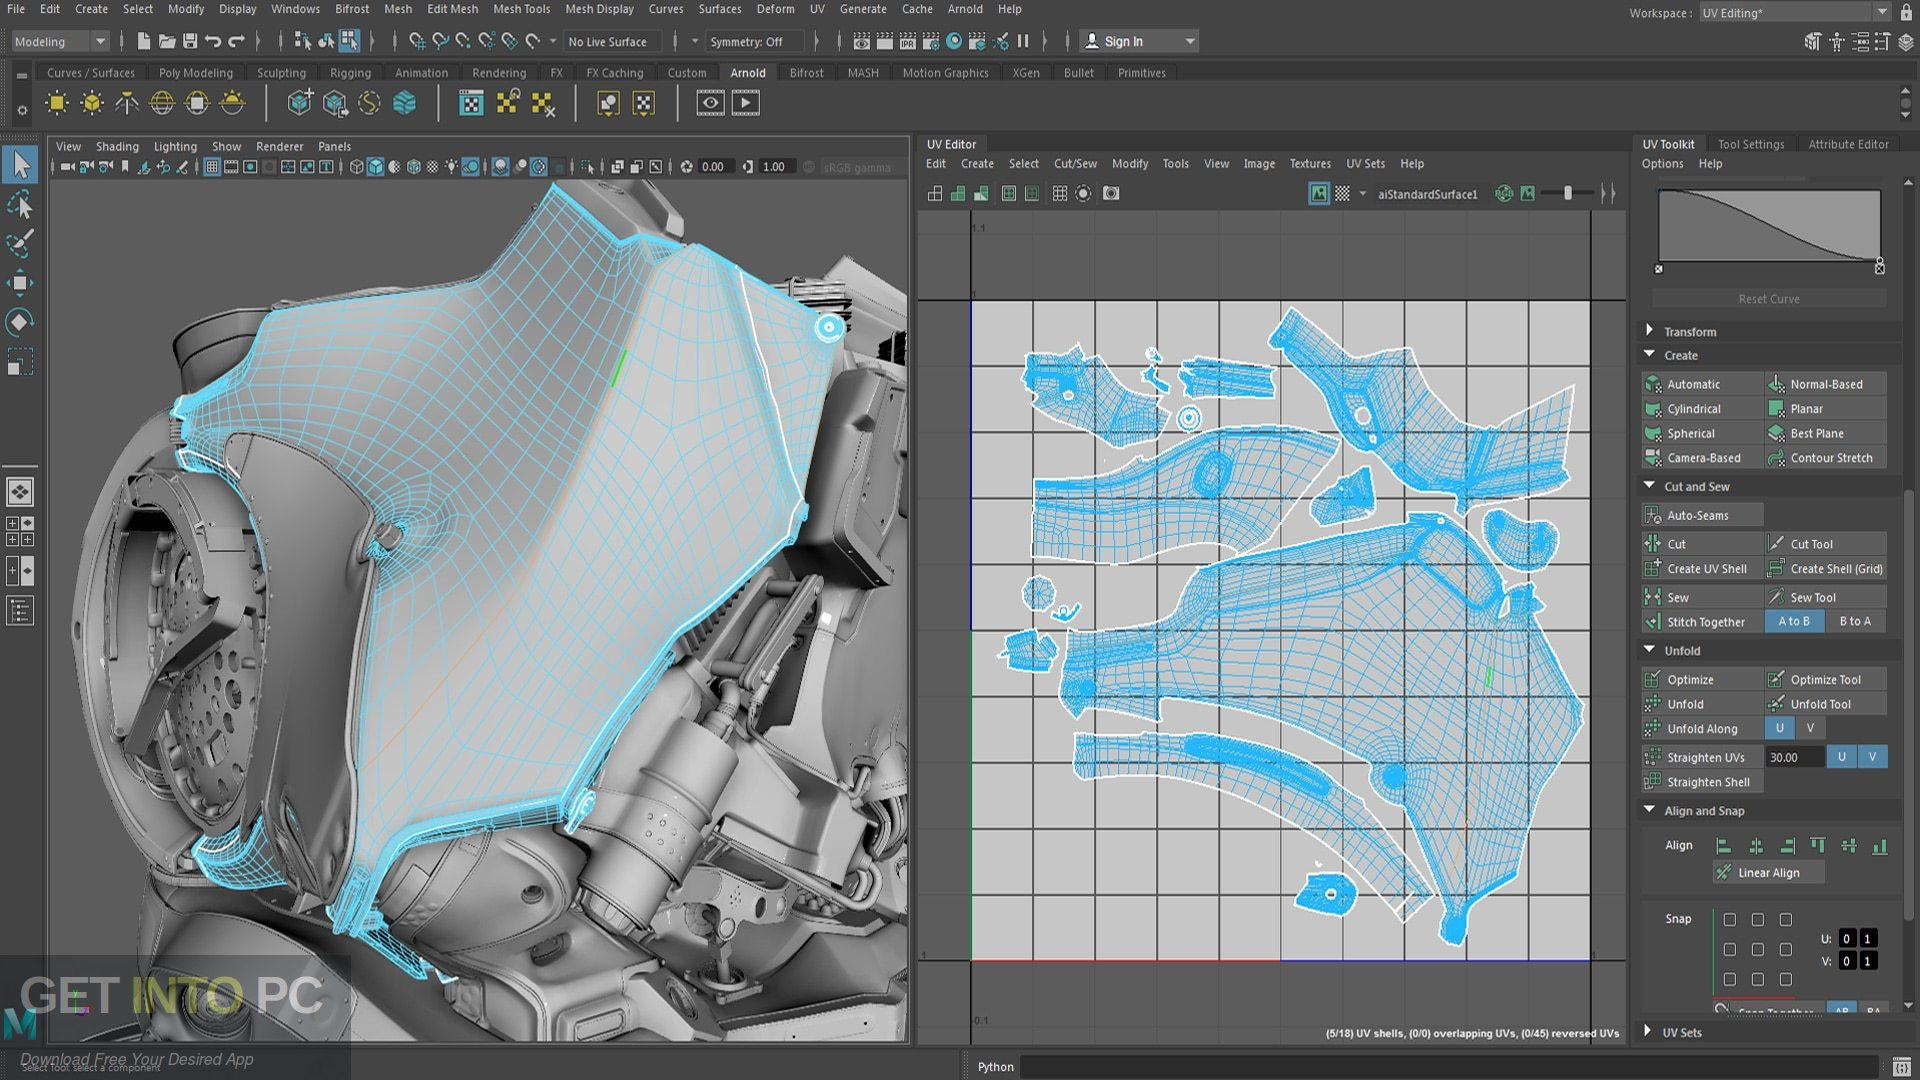 Autodesk Maya 2019 Latest Version Download-GetintoPC.com